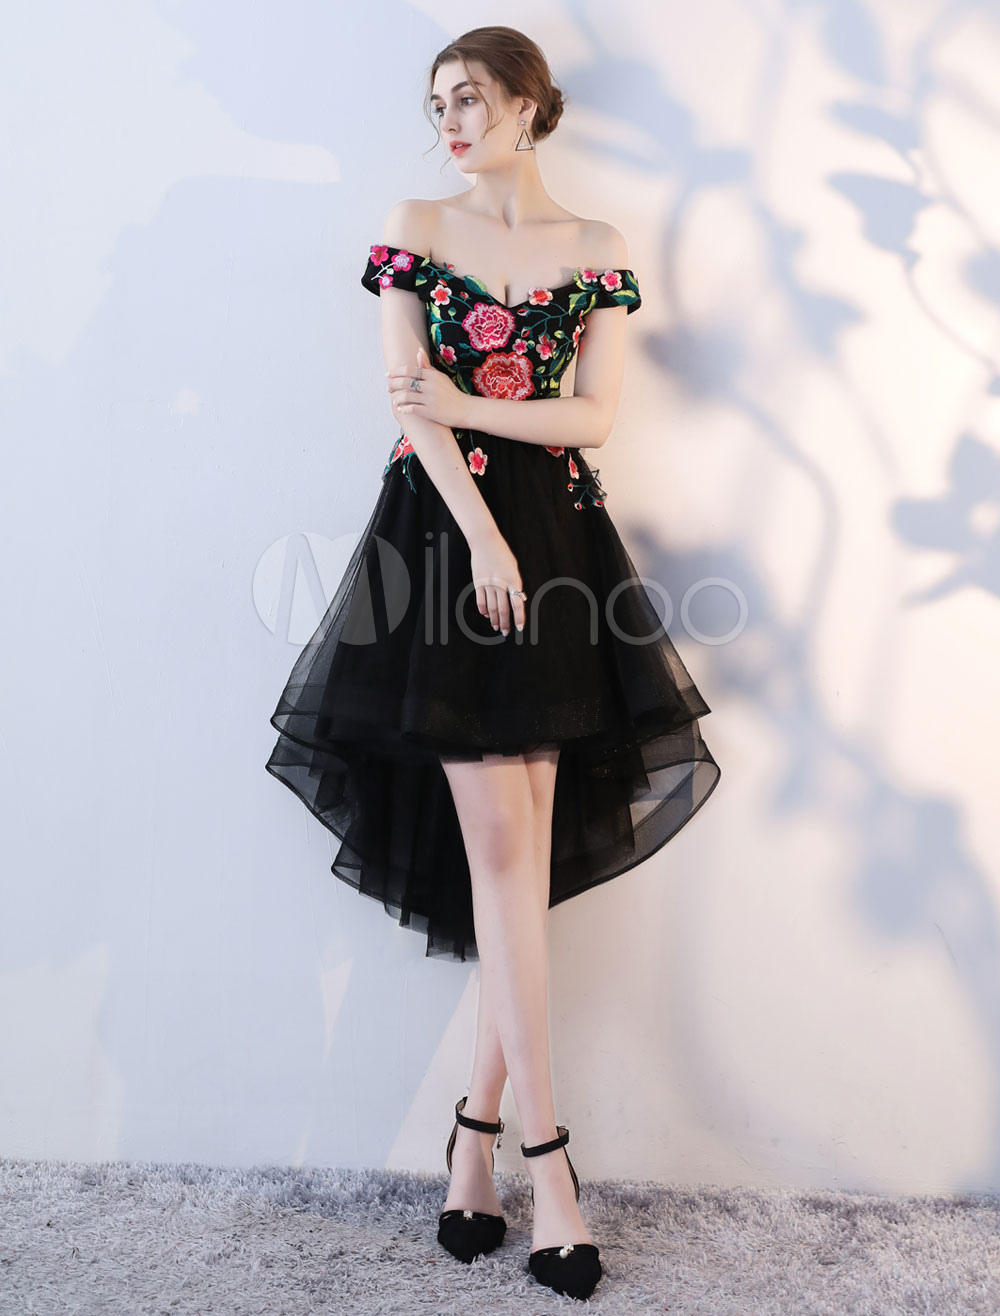 Black Cocktail Dresses Off The Shoulder Lace Flowers High Low Occasion Party Dress (Wedding) photo